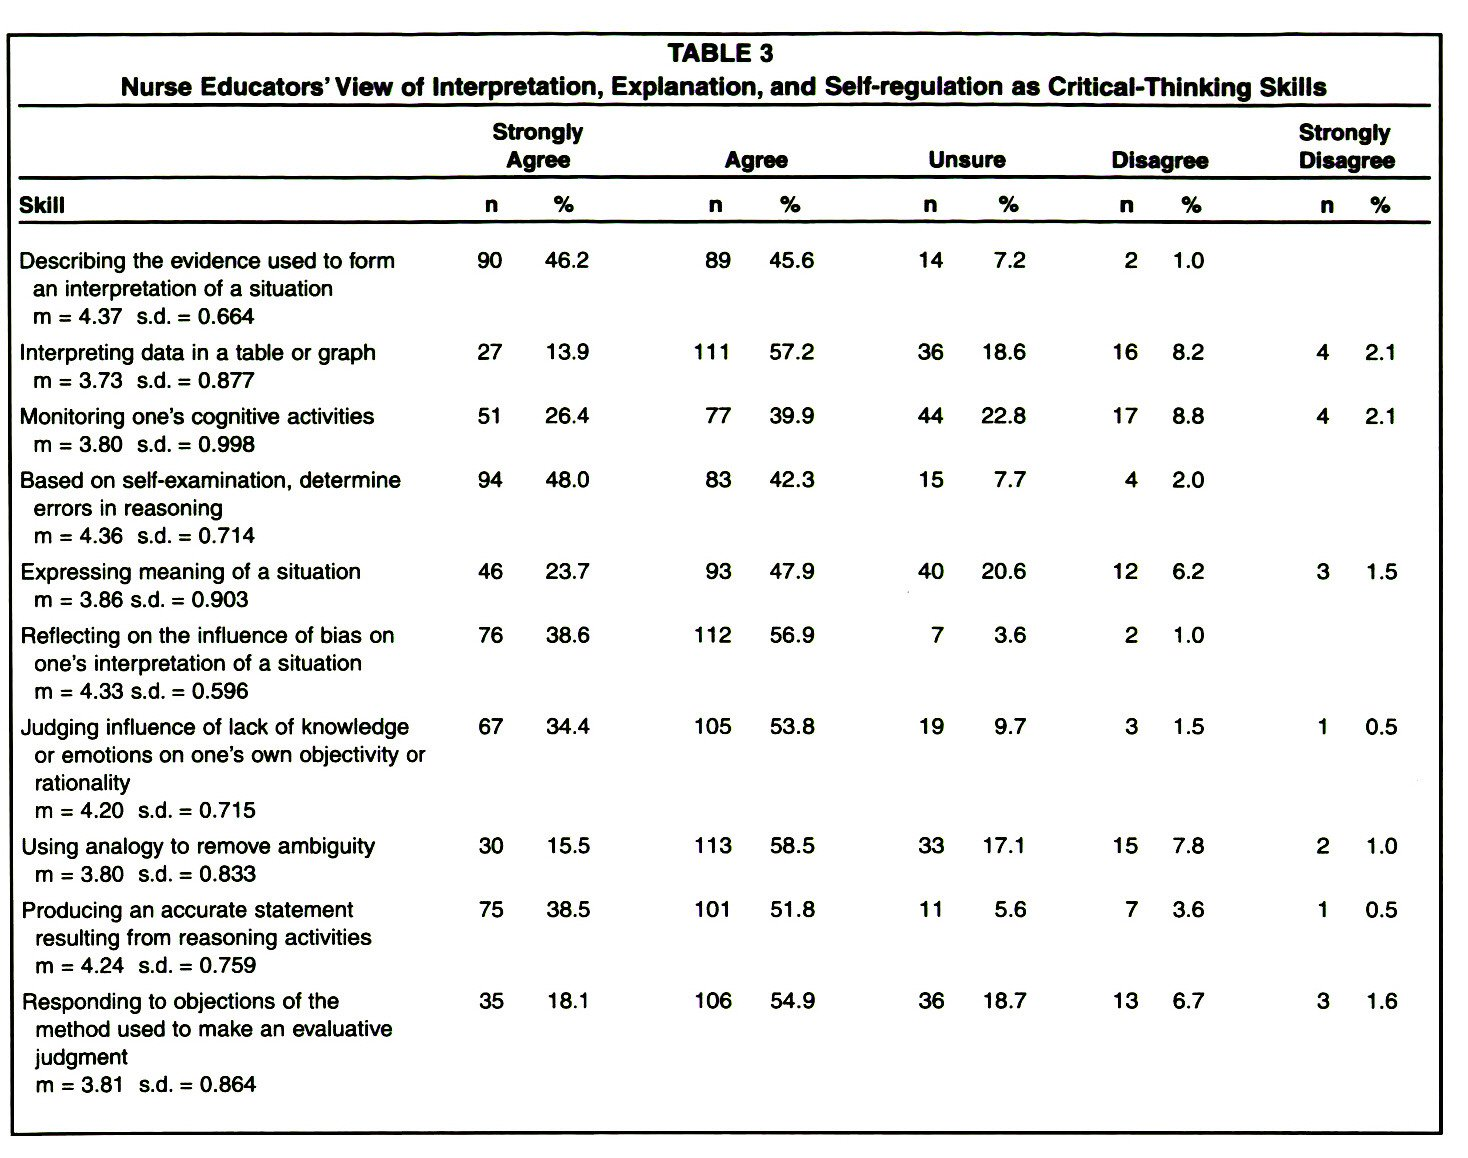 TABLE 3Nurse Educators' View of Interpretation, Explanation, and Self-regulation as Critical-Thinking Skills